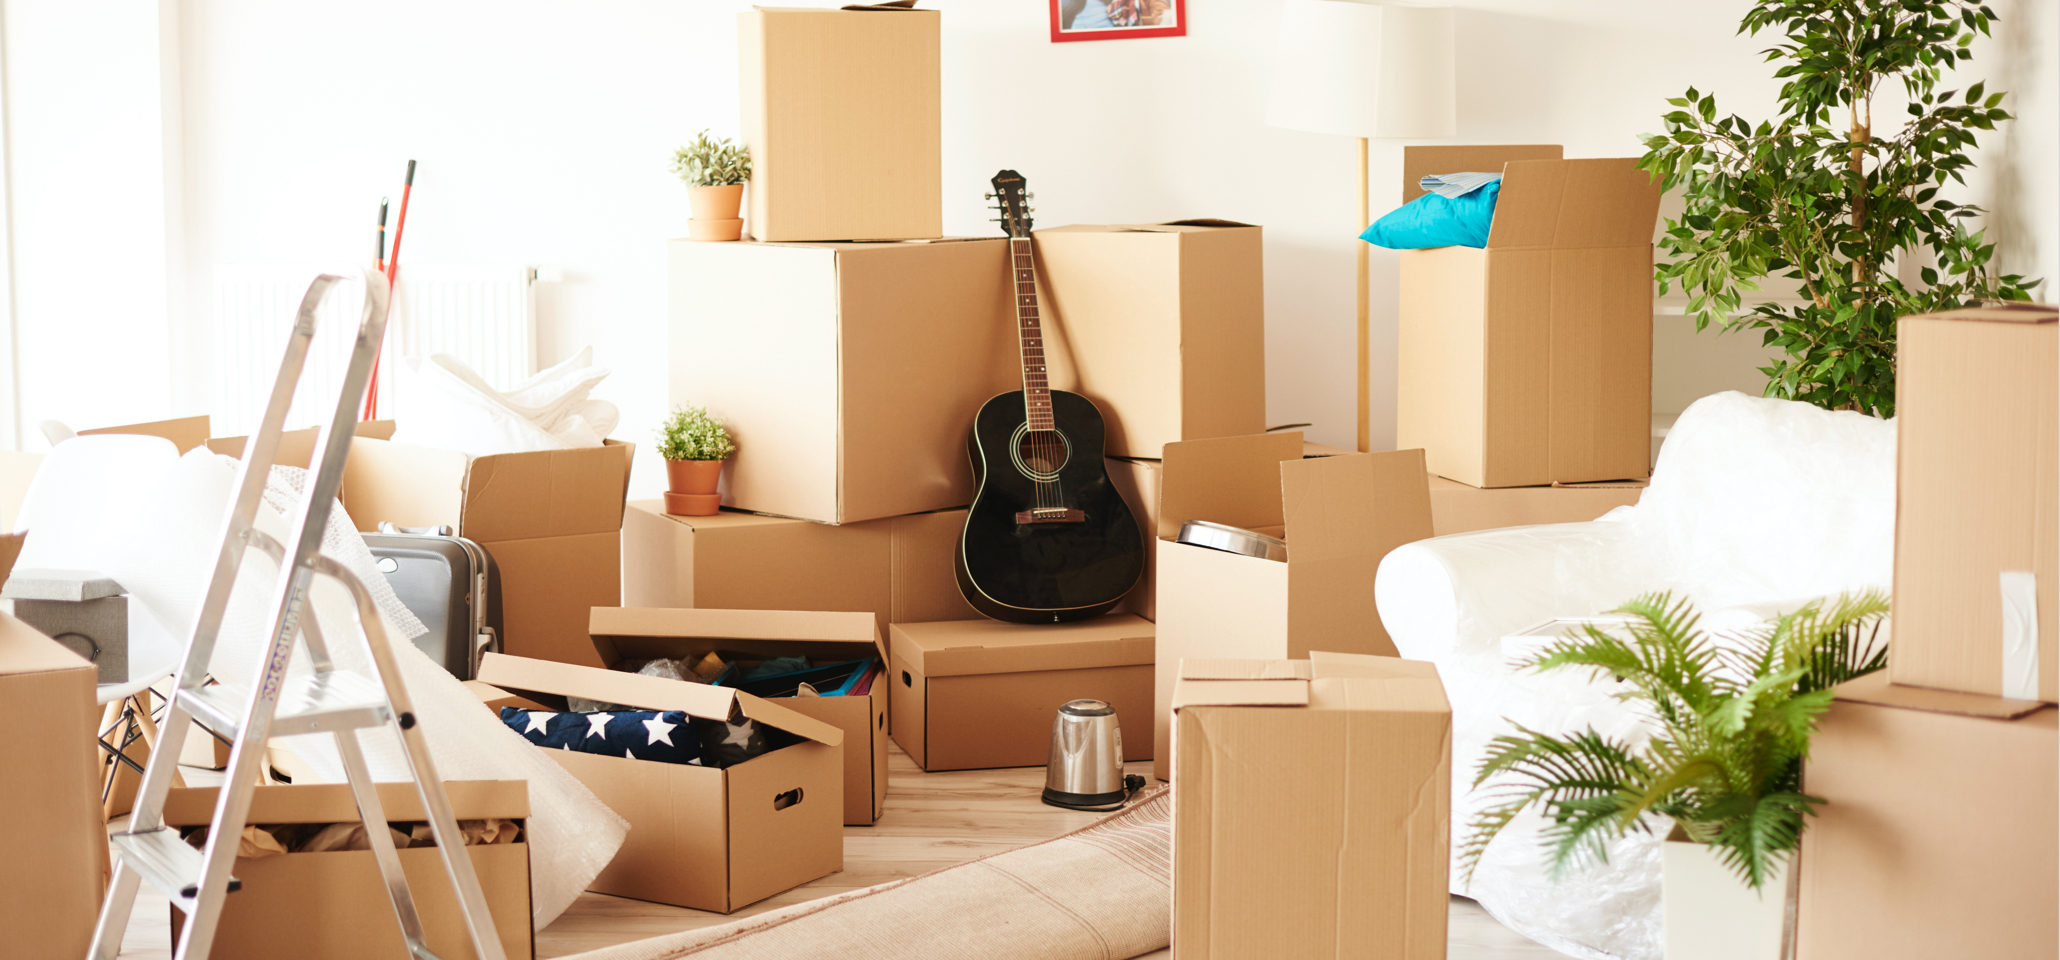 How to successfully declutter your home